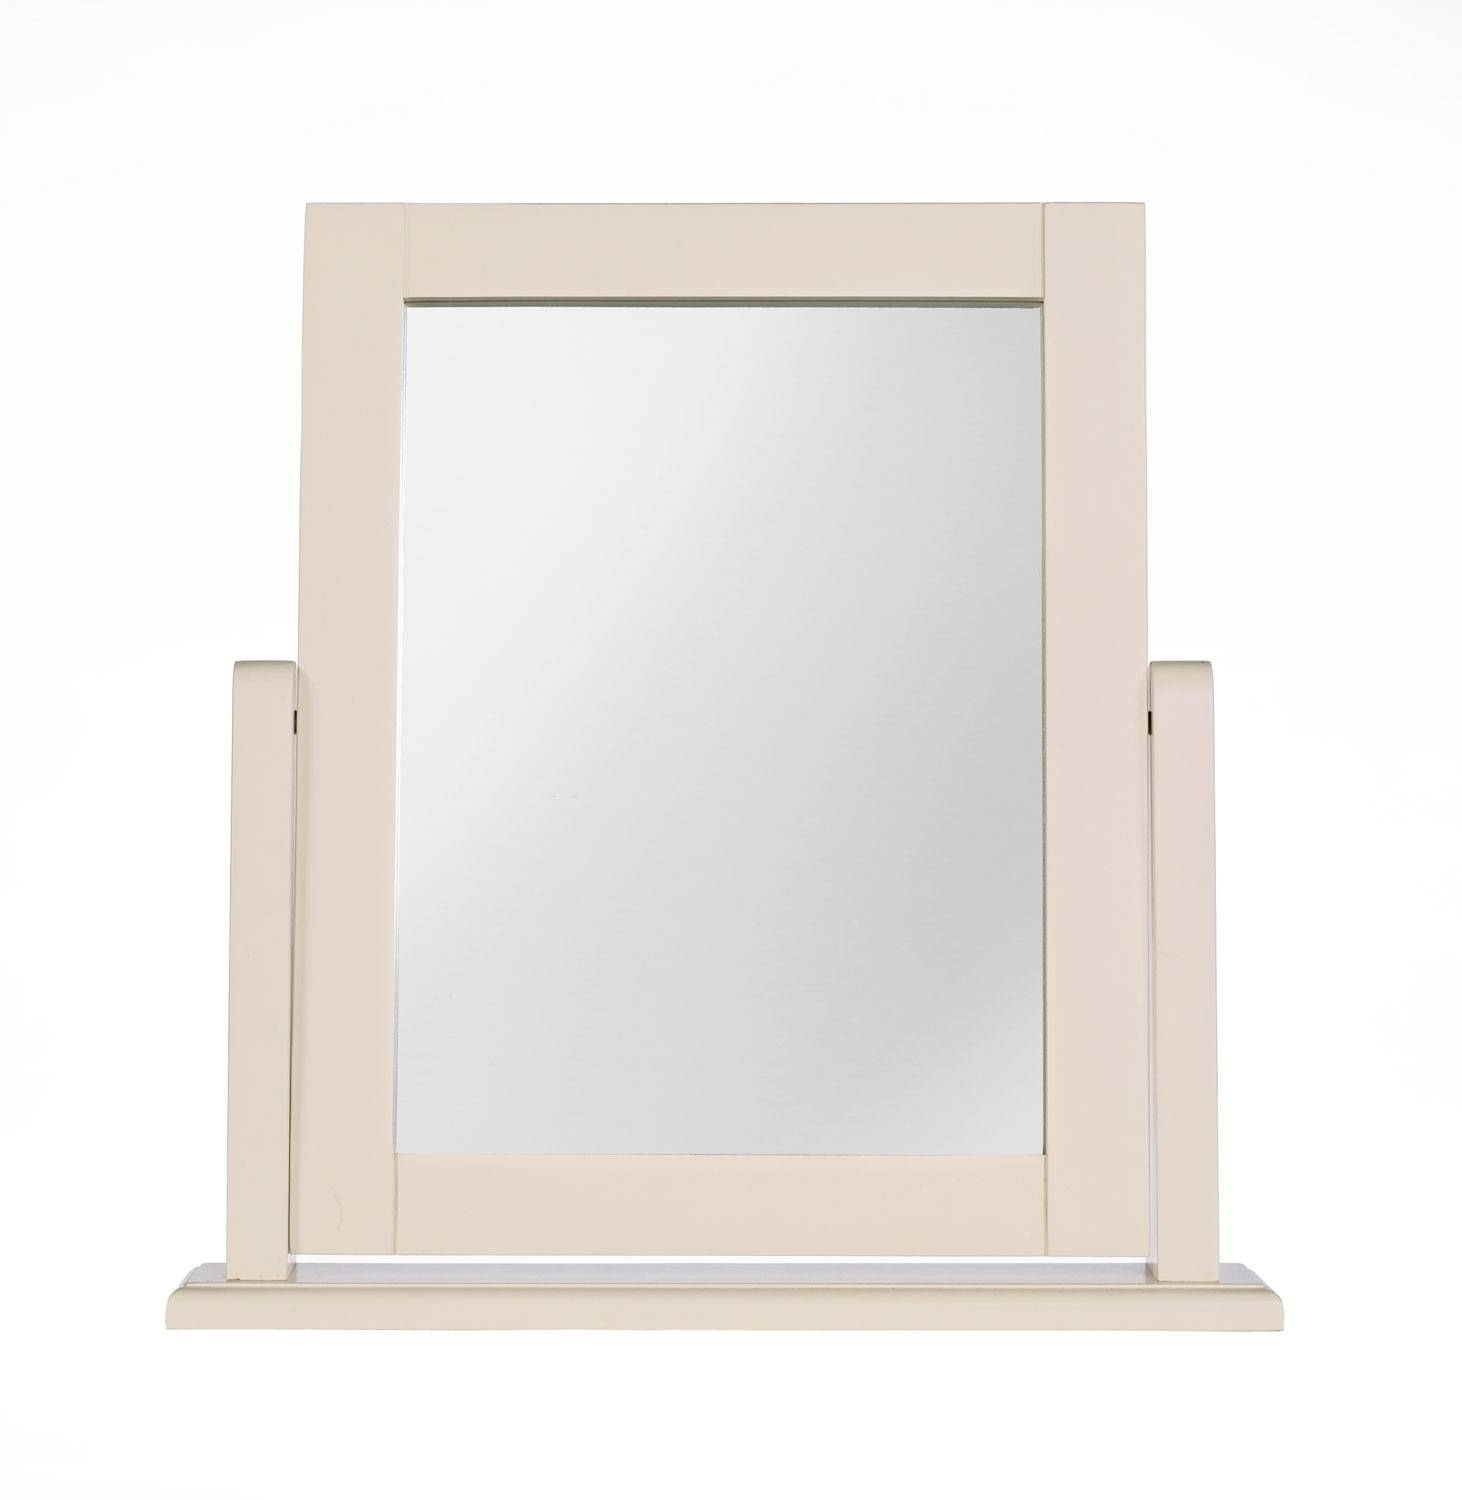 Trendy Tri F Dressing Table Mirrors Outlet Mirrors In F Mirror Cm for Dressing Table Mirrors (Image 23 of 25)